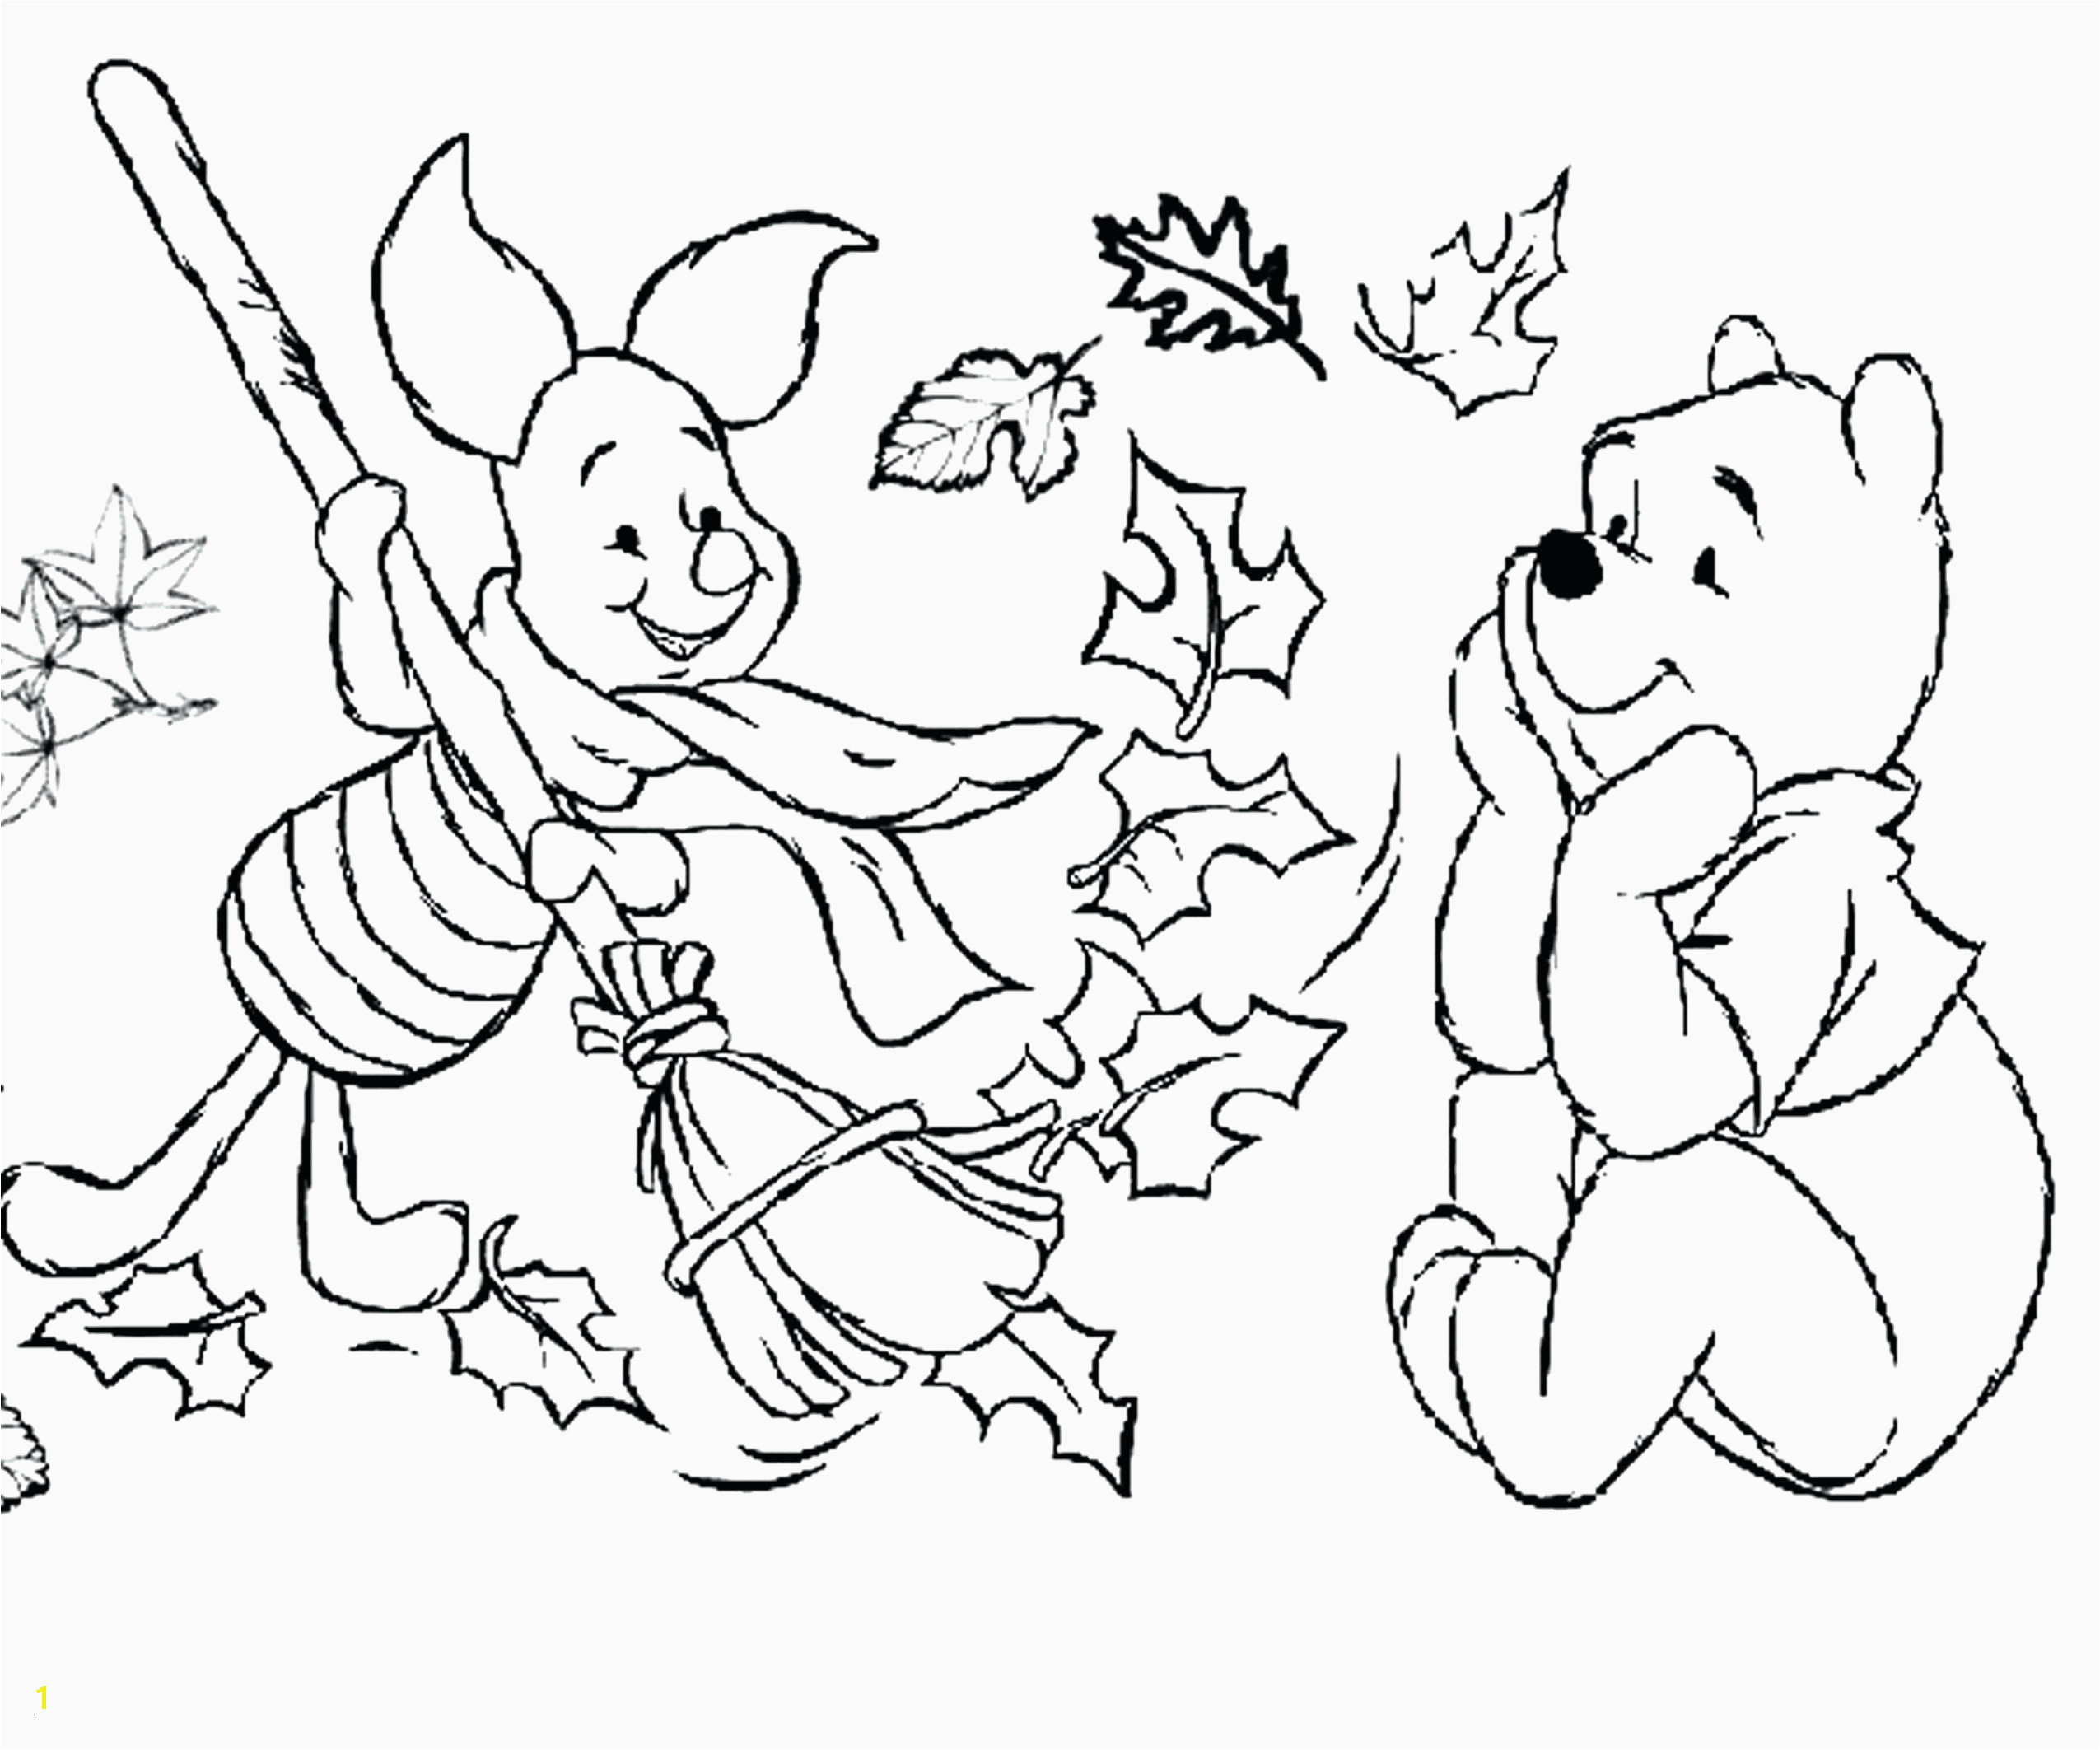 Kids Coloring Pages Princess Coloring Pages for Children Great Preschool Fall Coloring Pages 0d